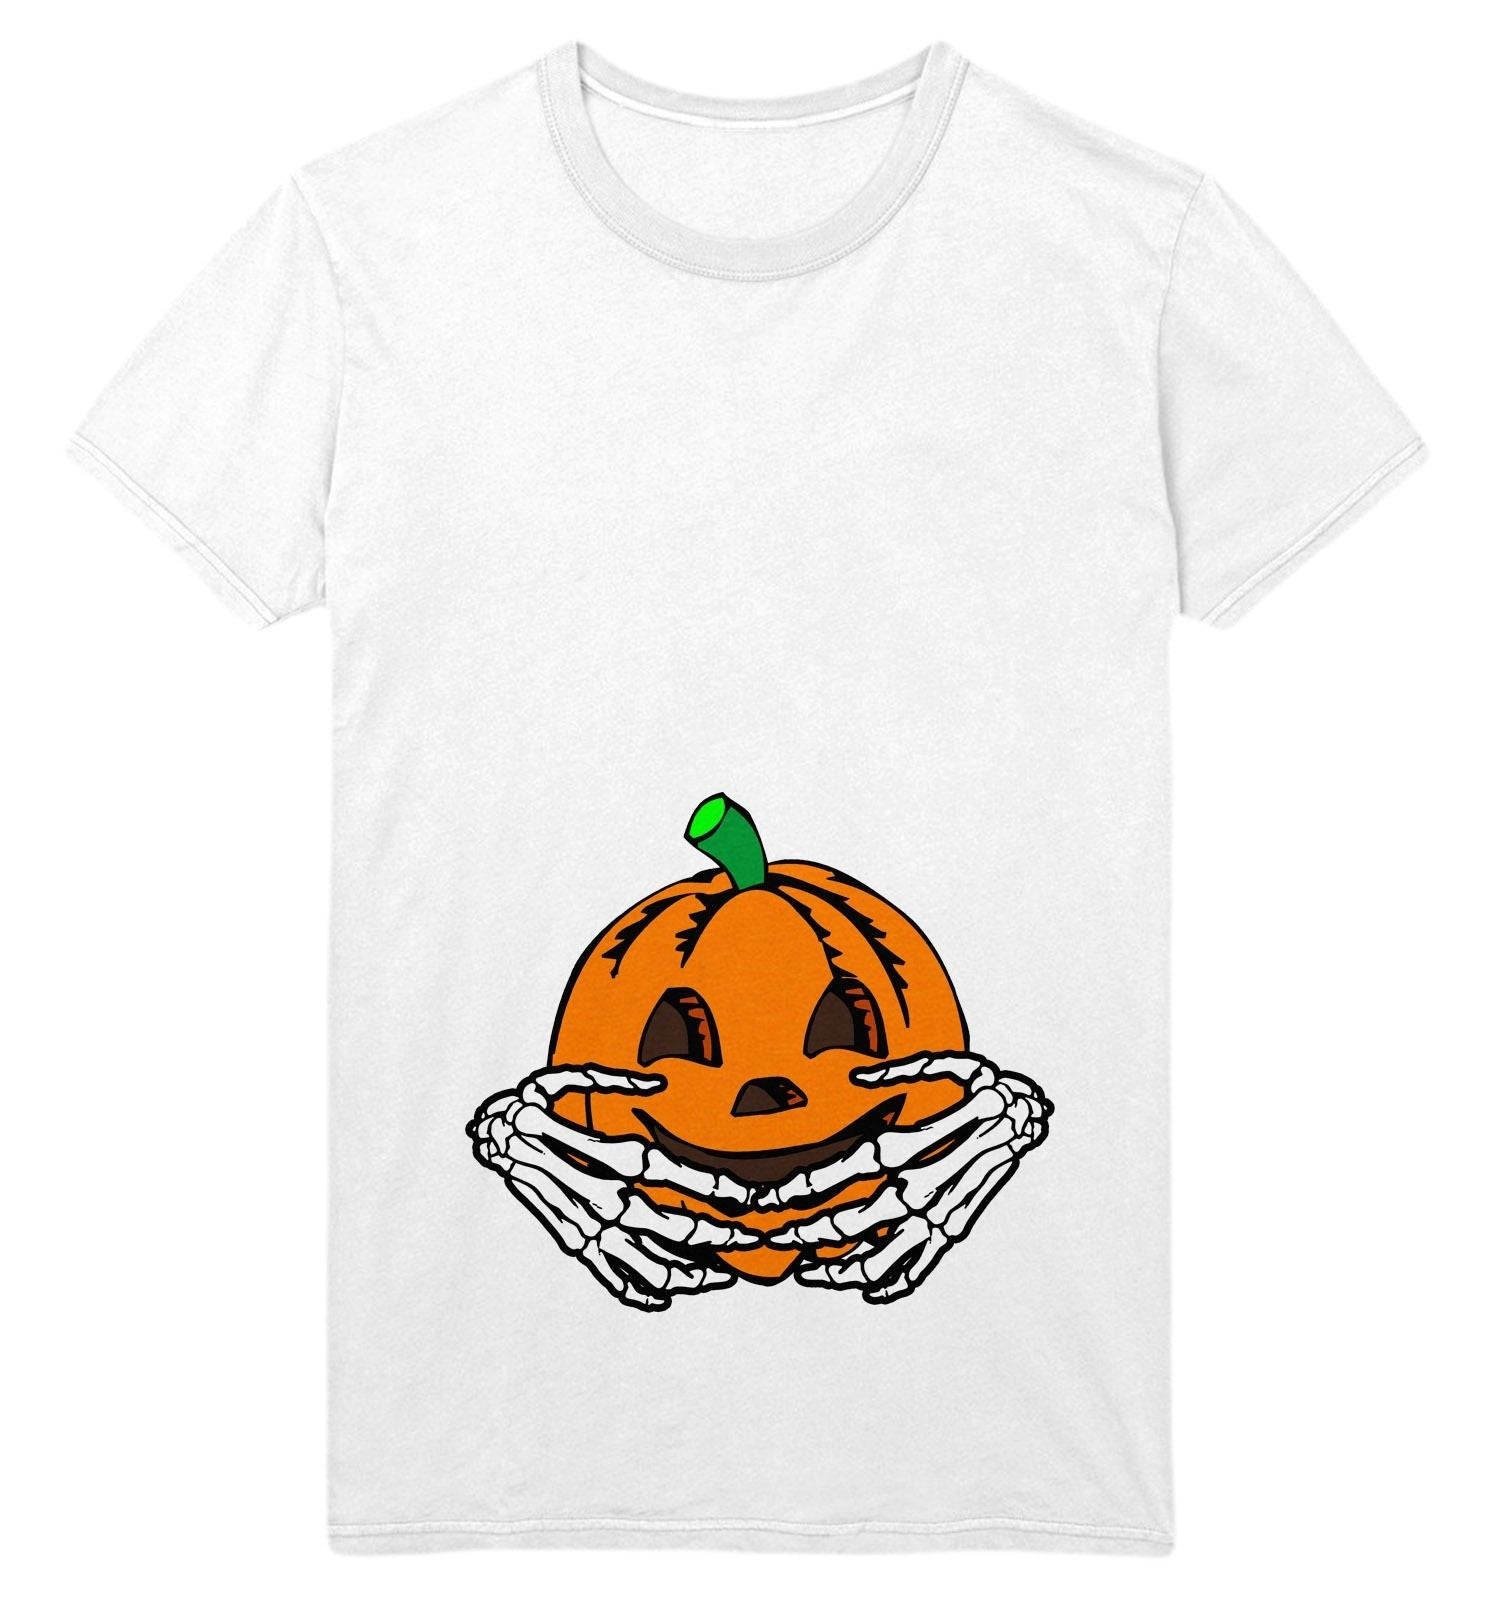 af089ff3dc3 Halloween Maternity T Shirt Womens Pumpkin Baby Skeleton Hands Funny  Costume Top